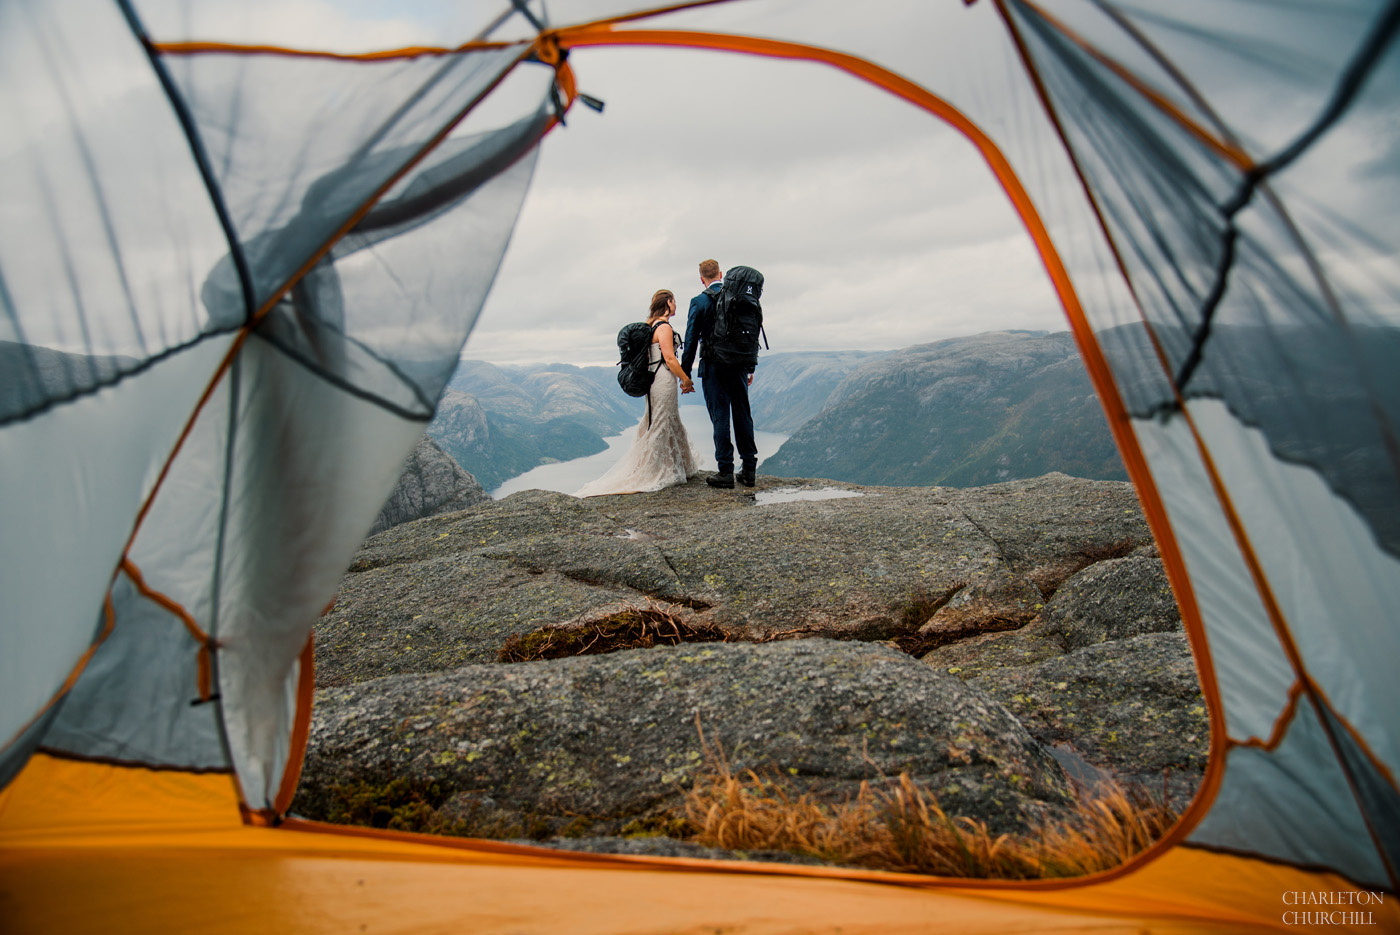 backpackers and campers life wedding photos by adventure wedding photographer Charleton churchill